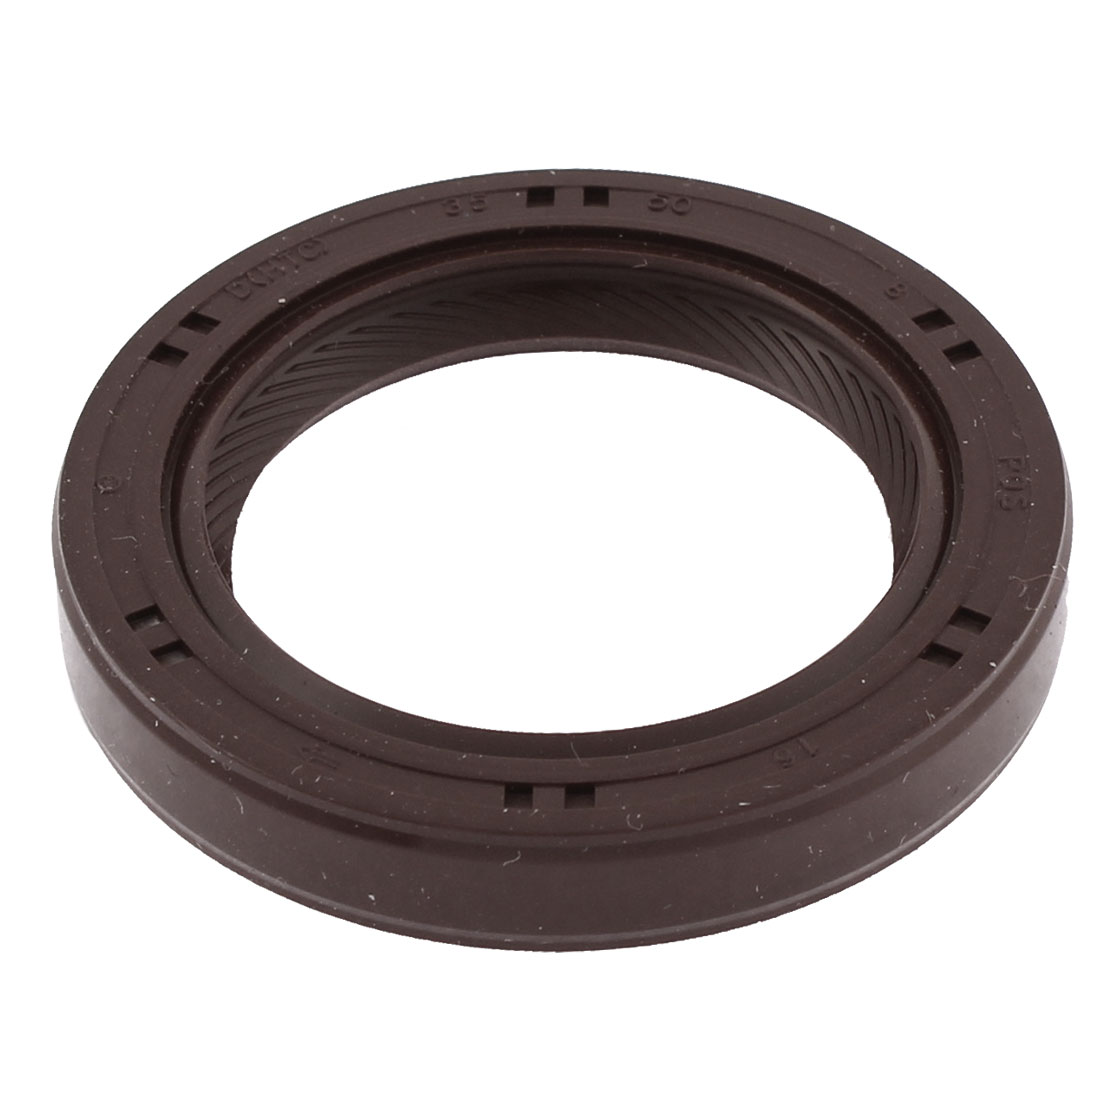 Car Auto Rubber Metric Rotary Shaft Double Lipped Oil Seal 35 x 50 x 8mm